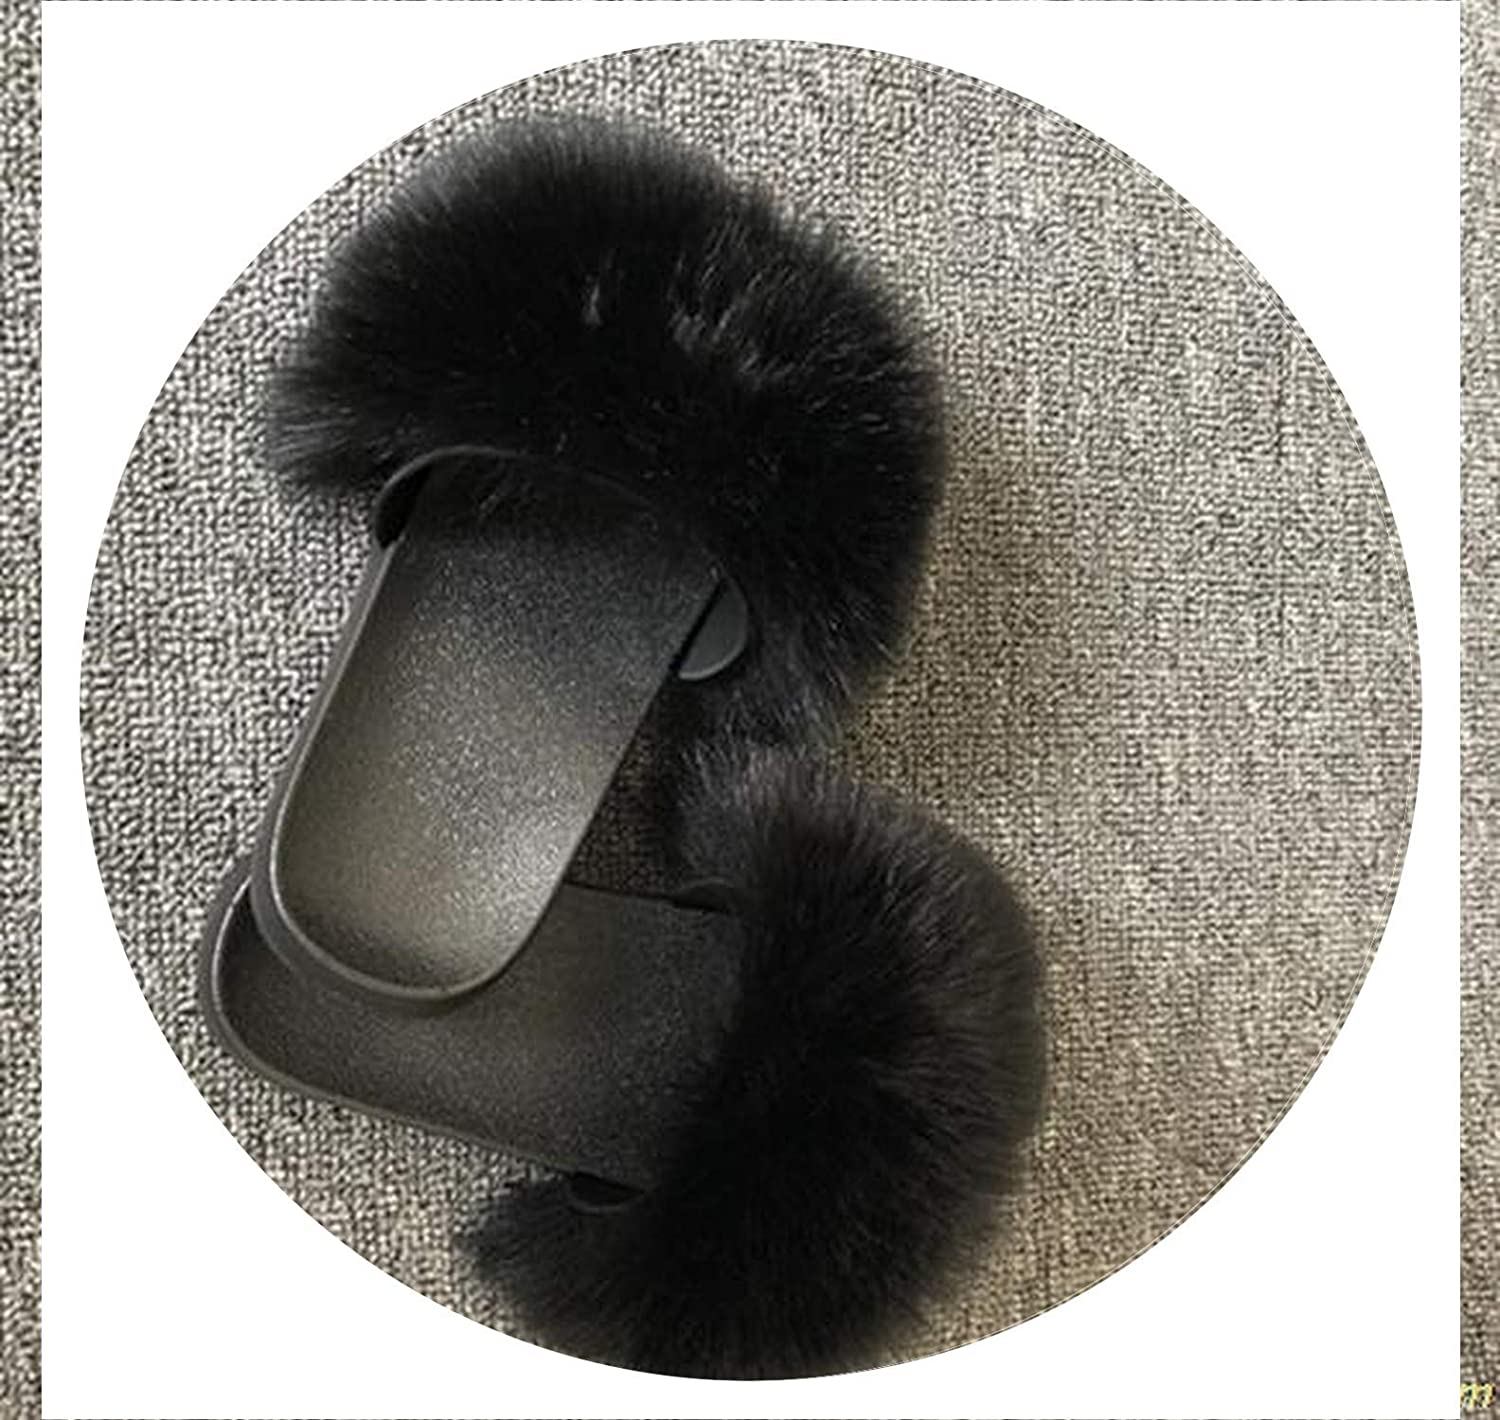 Brave pinkmary Slippers Women Fur Home Fluffy Sliders Plush Furry Flats Sweet Ladies shoes Large Size 45 Cute Pantufas